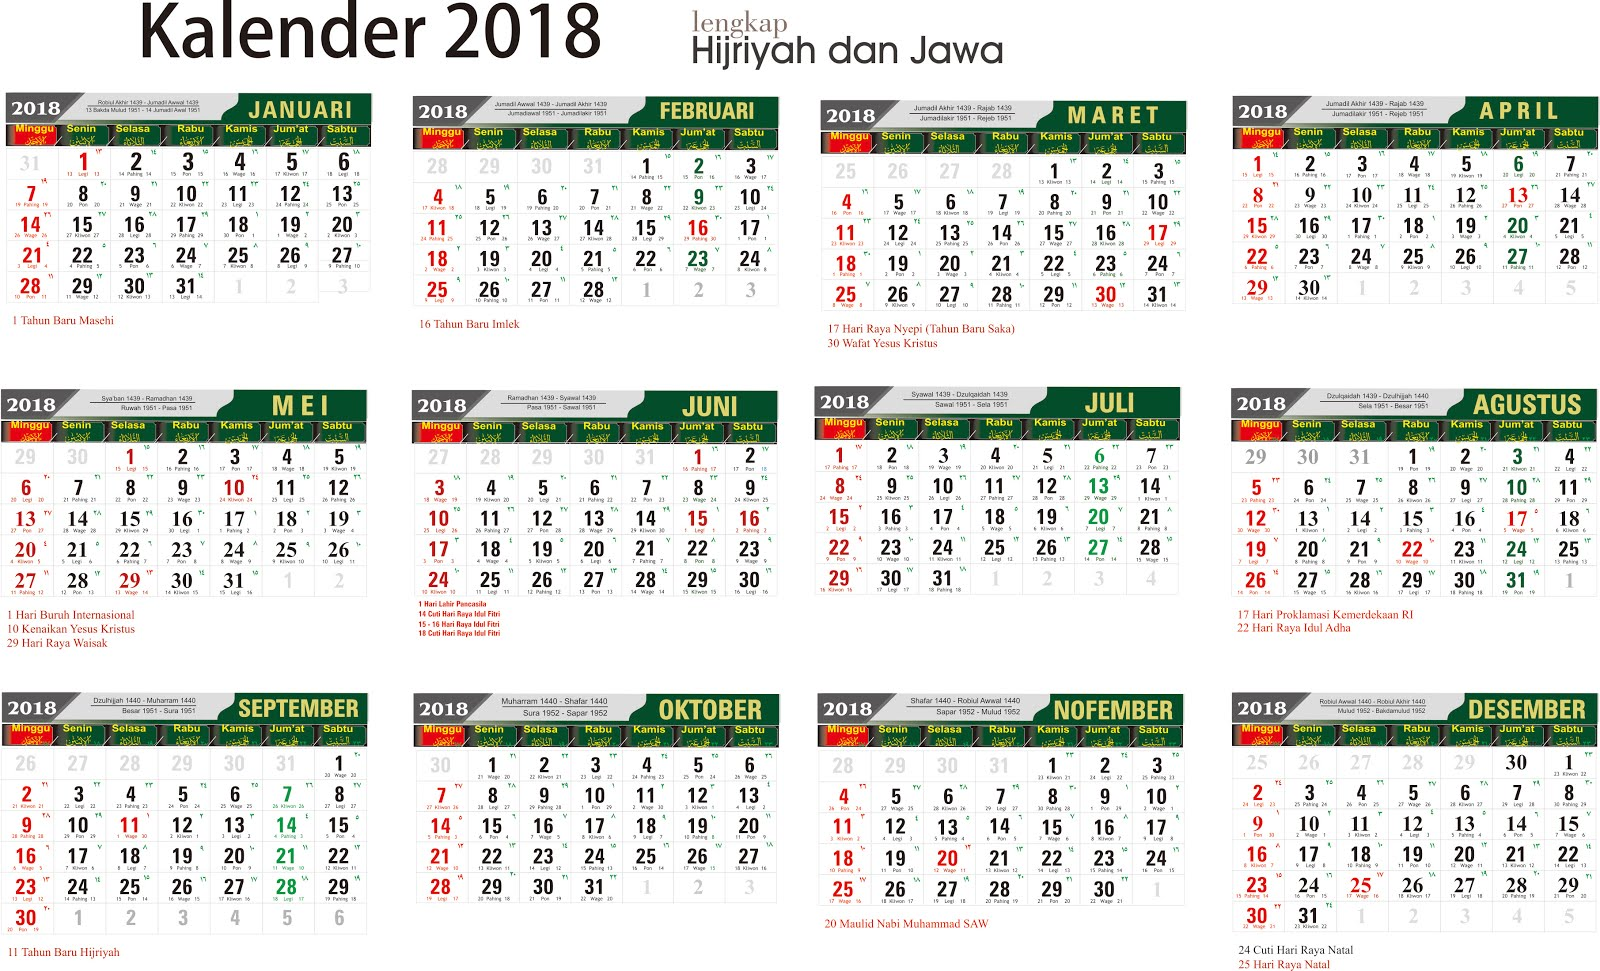 download kalender 2018 lengkap jawa arab download ebook umum dan mata pelajaran. Black Bedroom Furniture Sets. Home Design Ideas